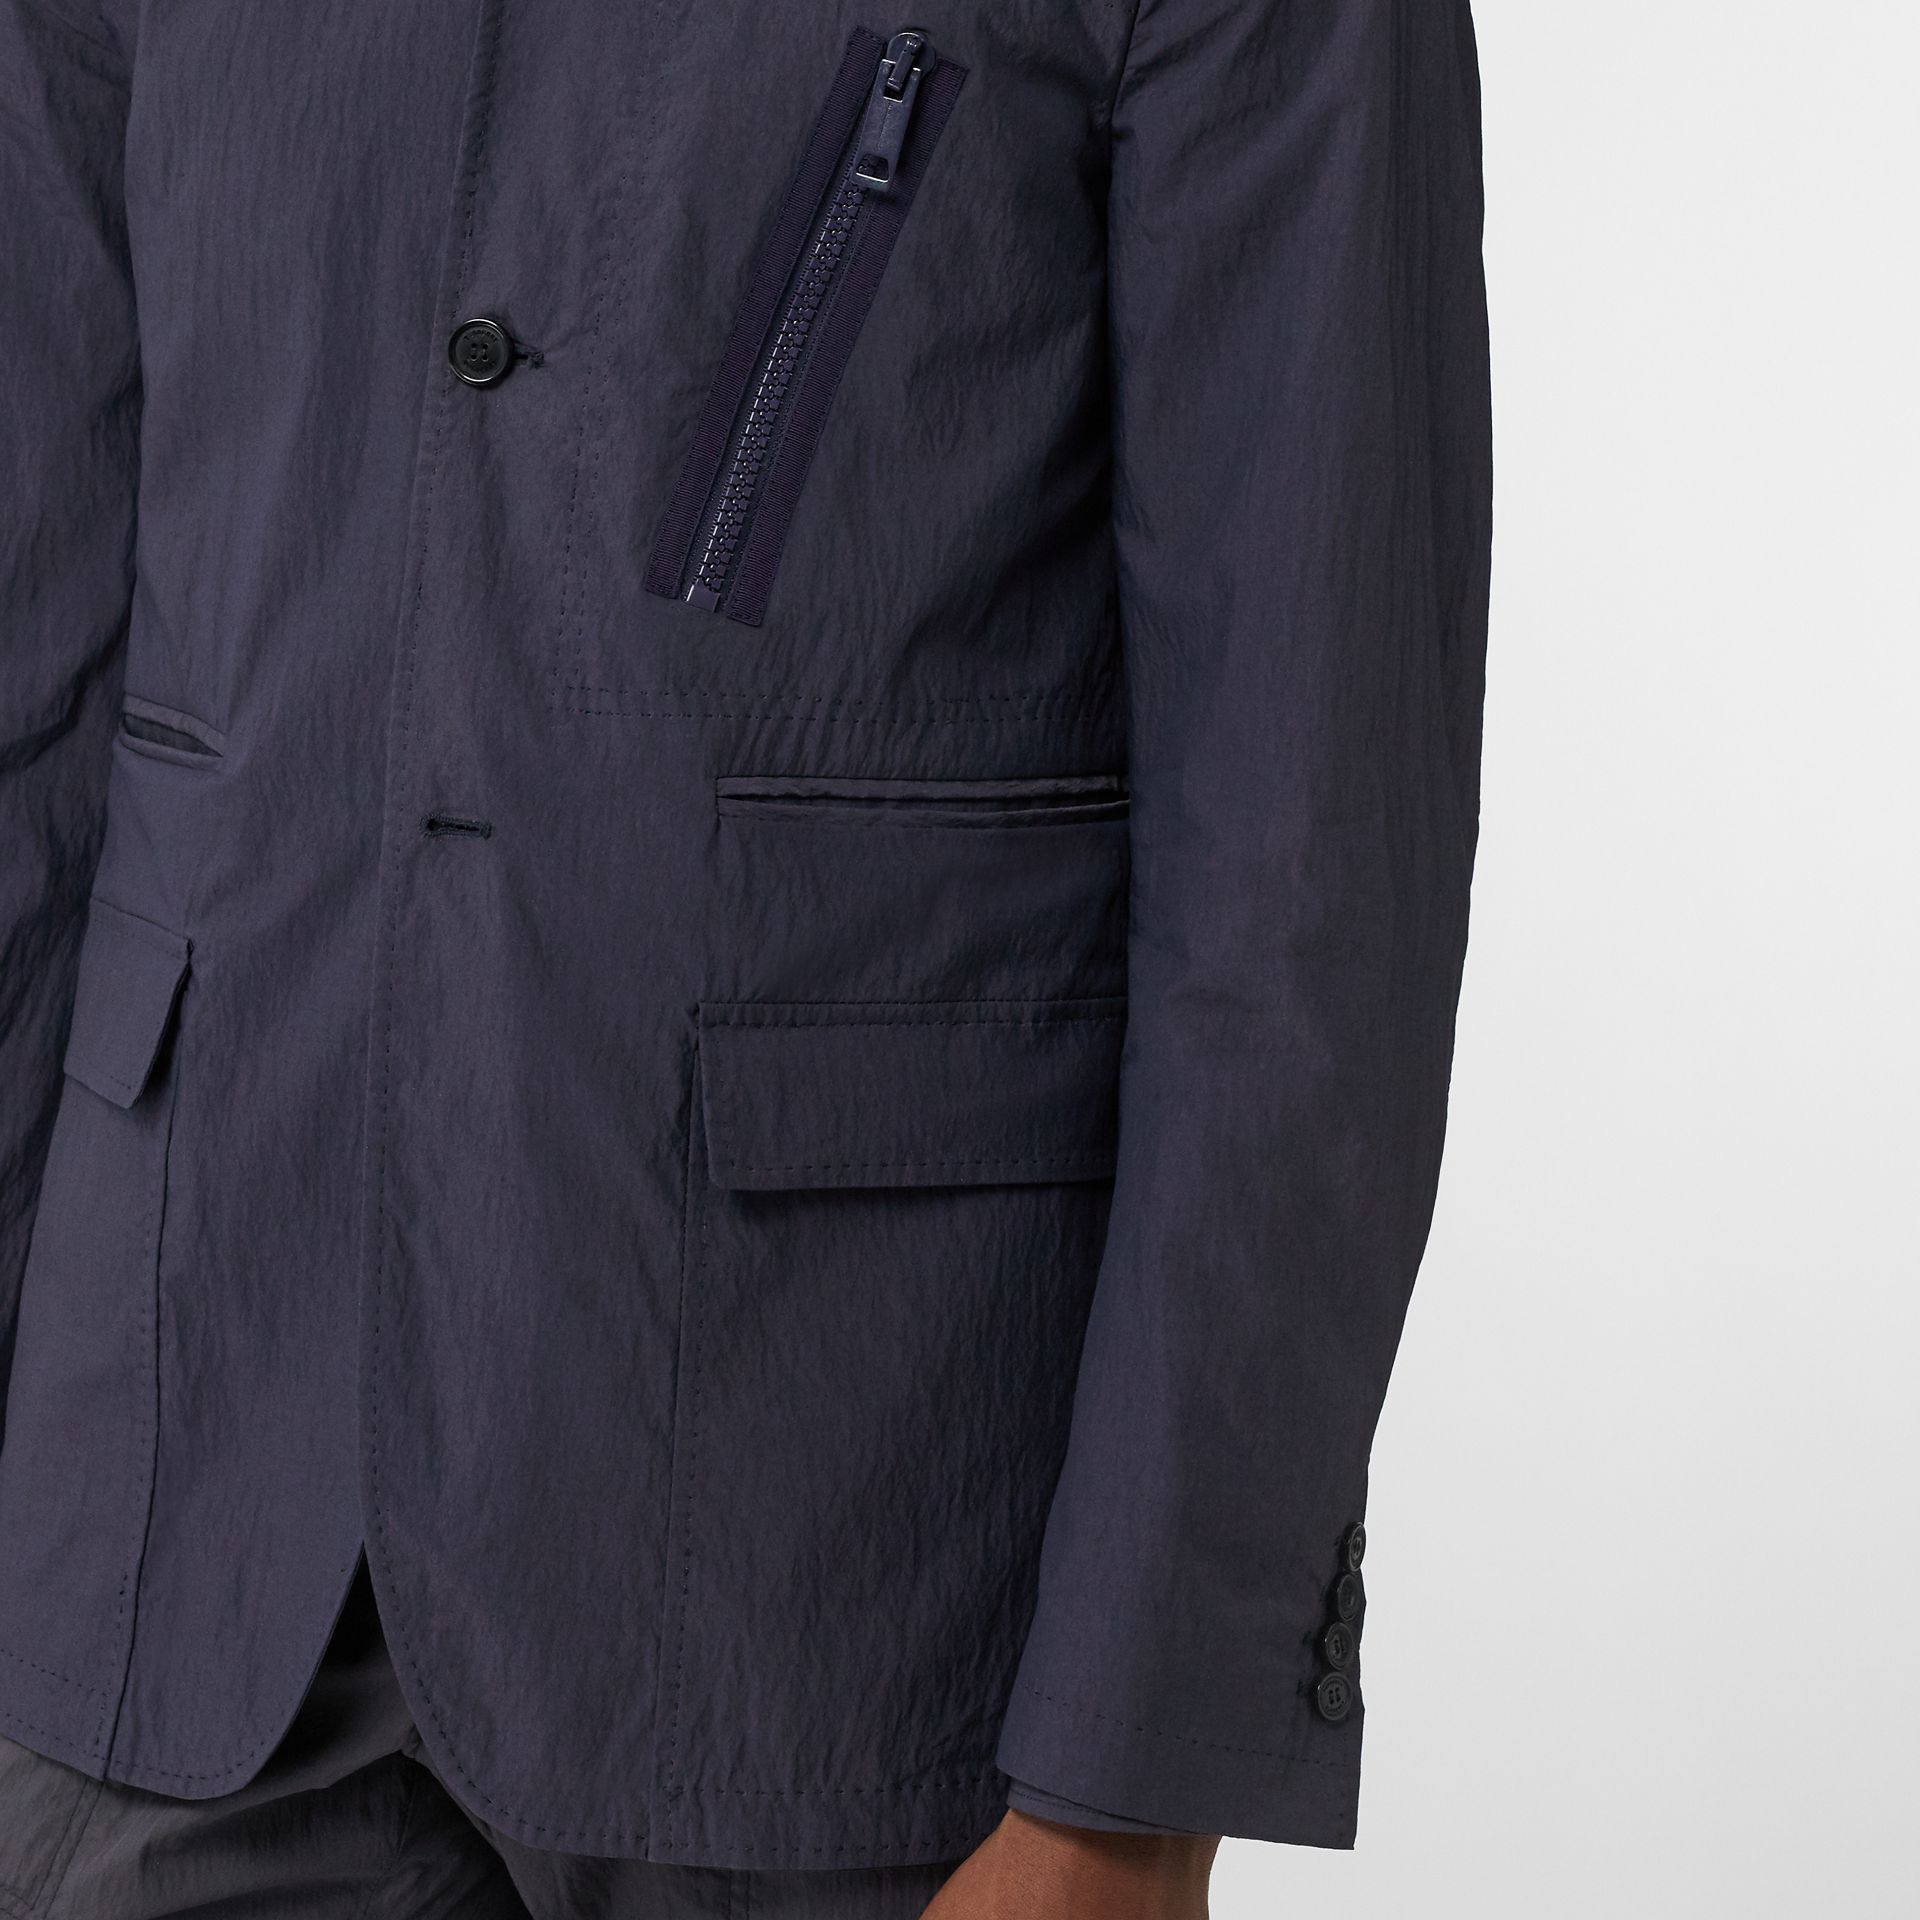 Crinkled Cotton Blend Tailored Jacket in Navy - Men | Burberry - gallery image 4